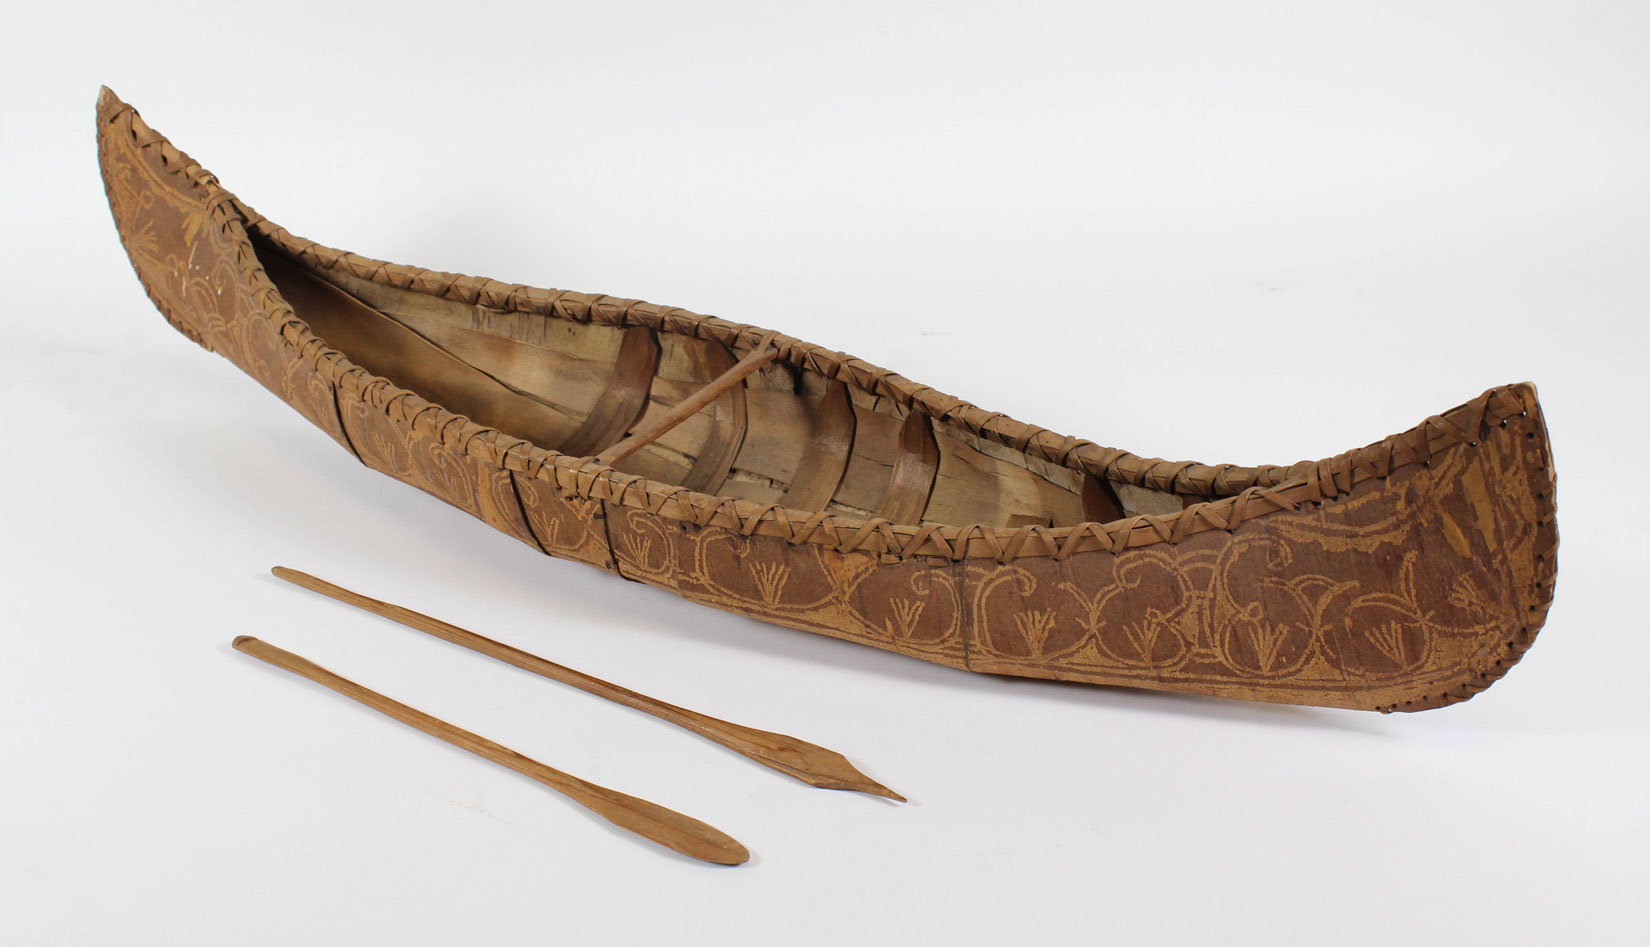 A model of a birchbark canoe has brown birchbark on a wooden frame. There is one thwart in the center. Intricate double-curve designs are on the outside of the canoe. Two wooden paddles lie beside the canoe, one with a rounded blade and one with a pointed blade.